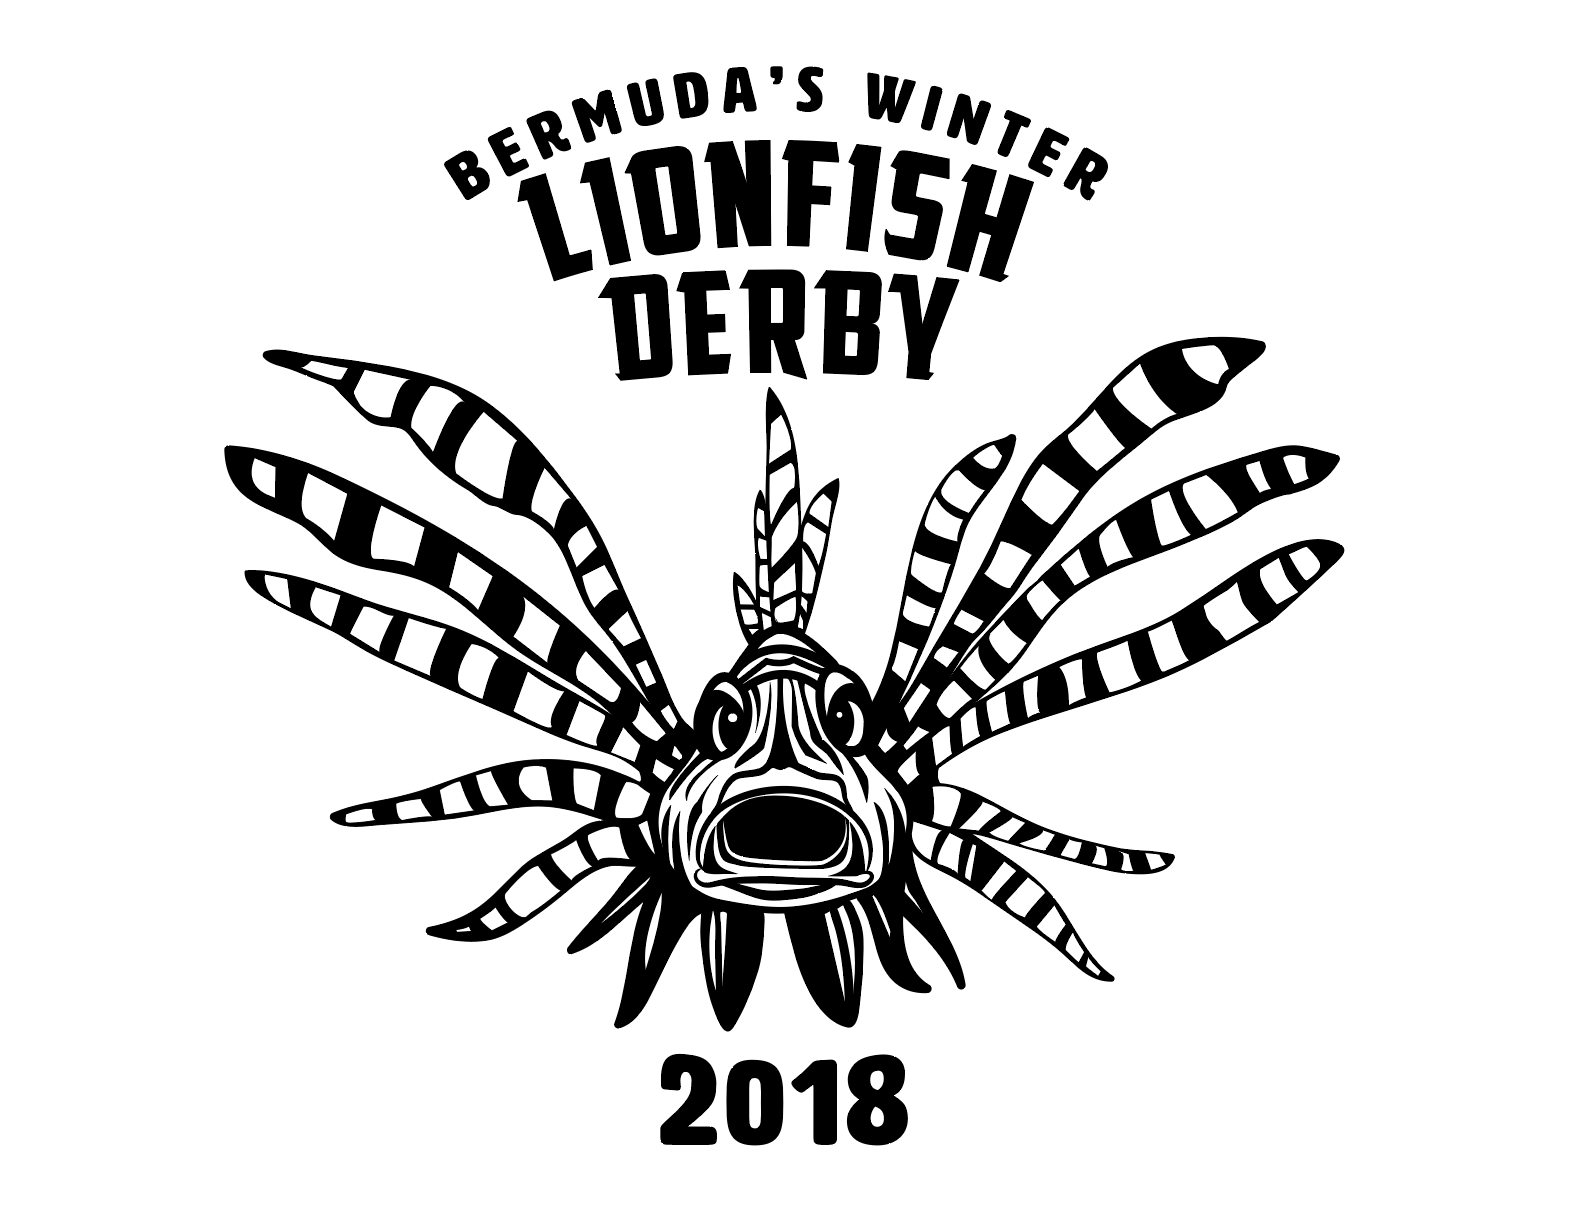 Bermuda's fourth annual Winter Lionfish Derby Logo